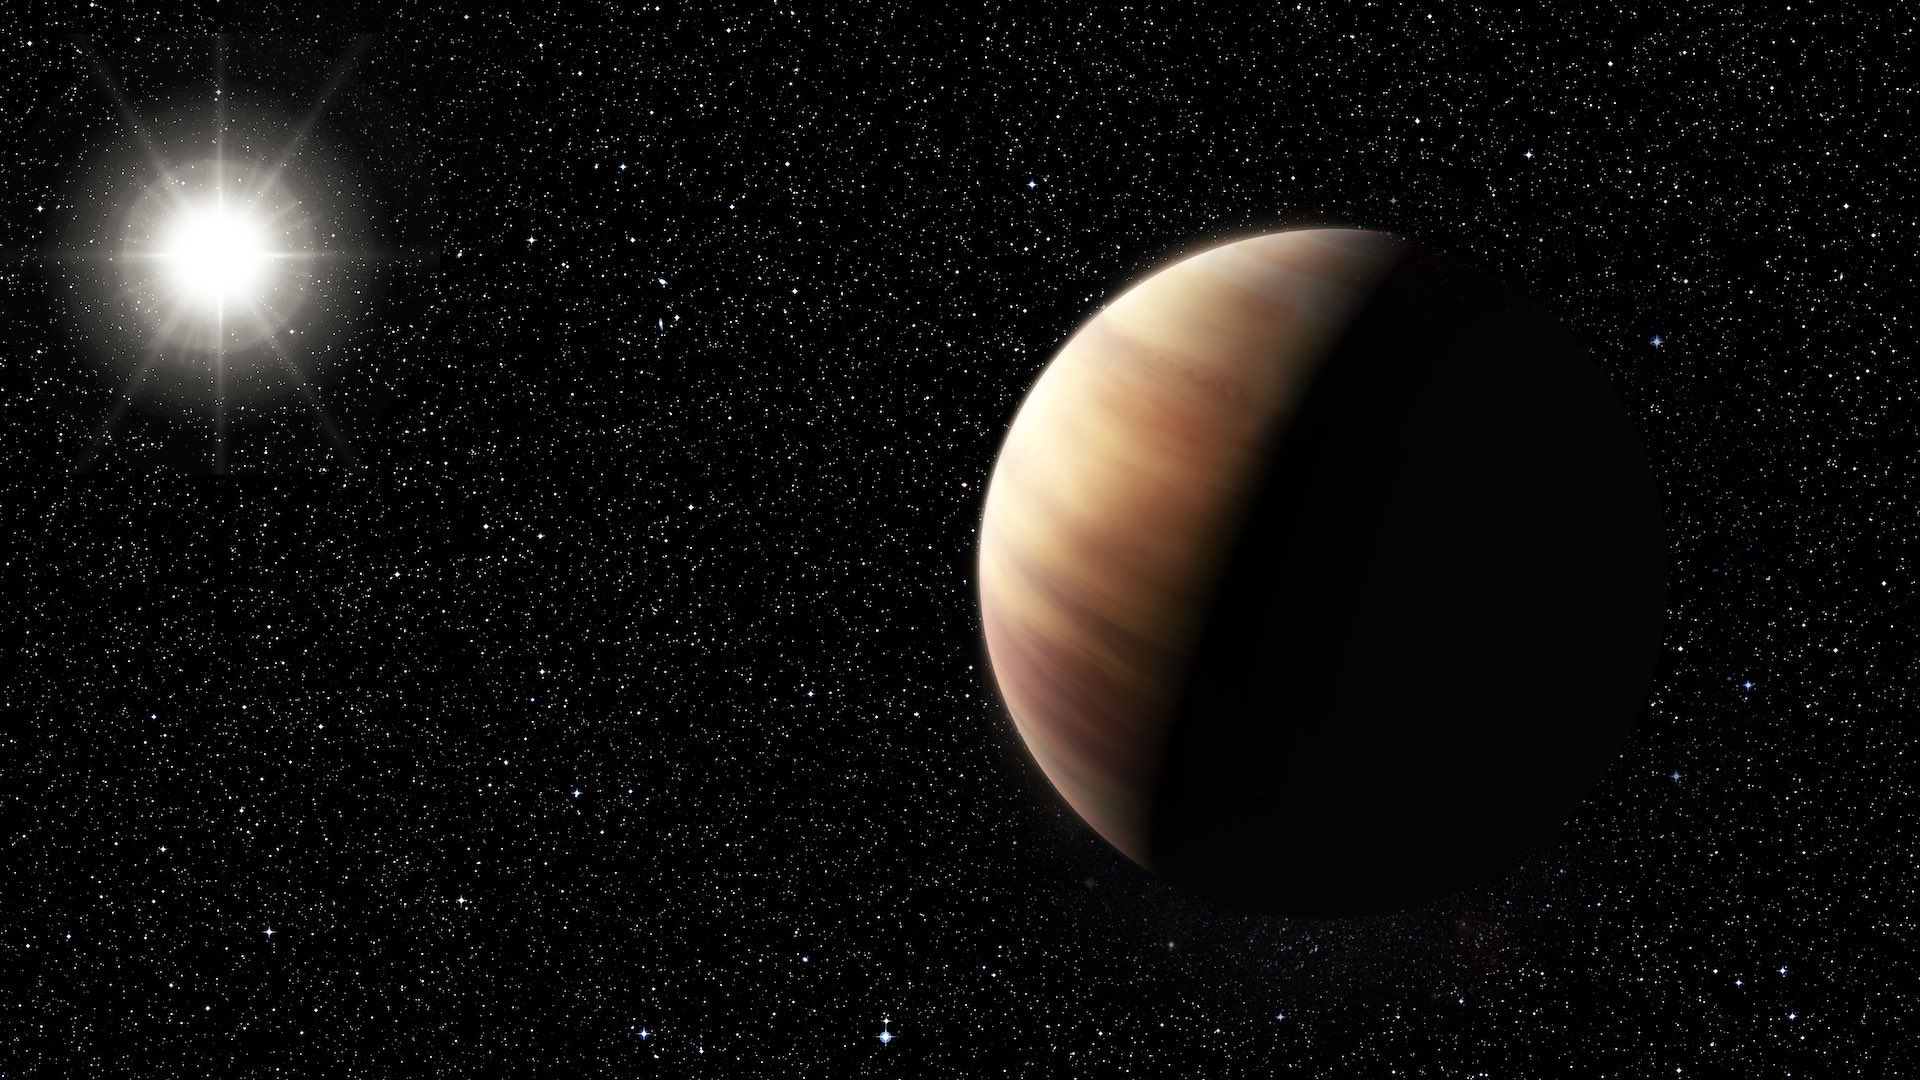 An artist's impression of a Jupiter twin orbiting a distant star.